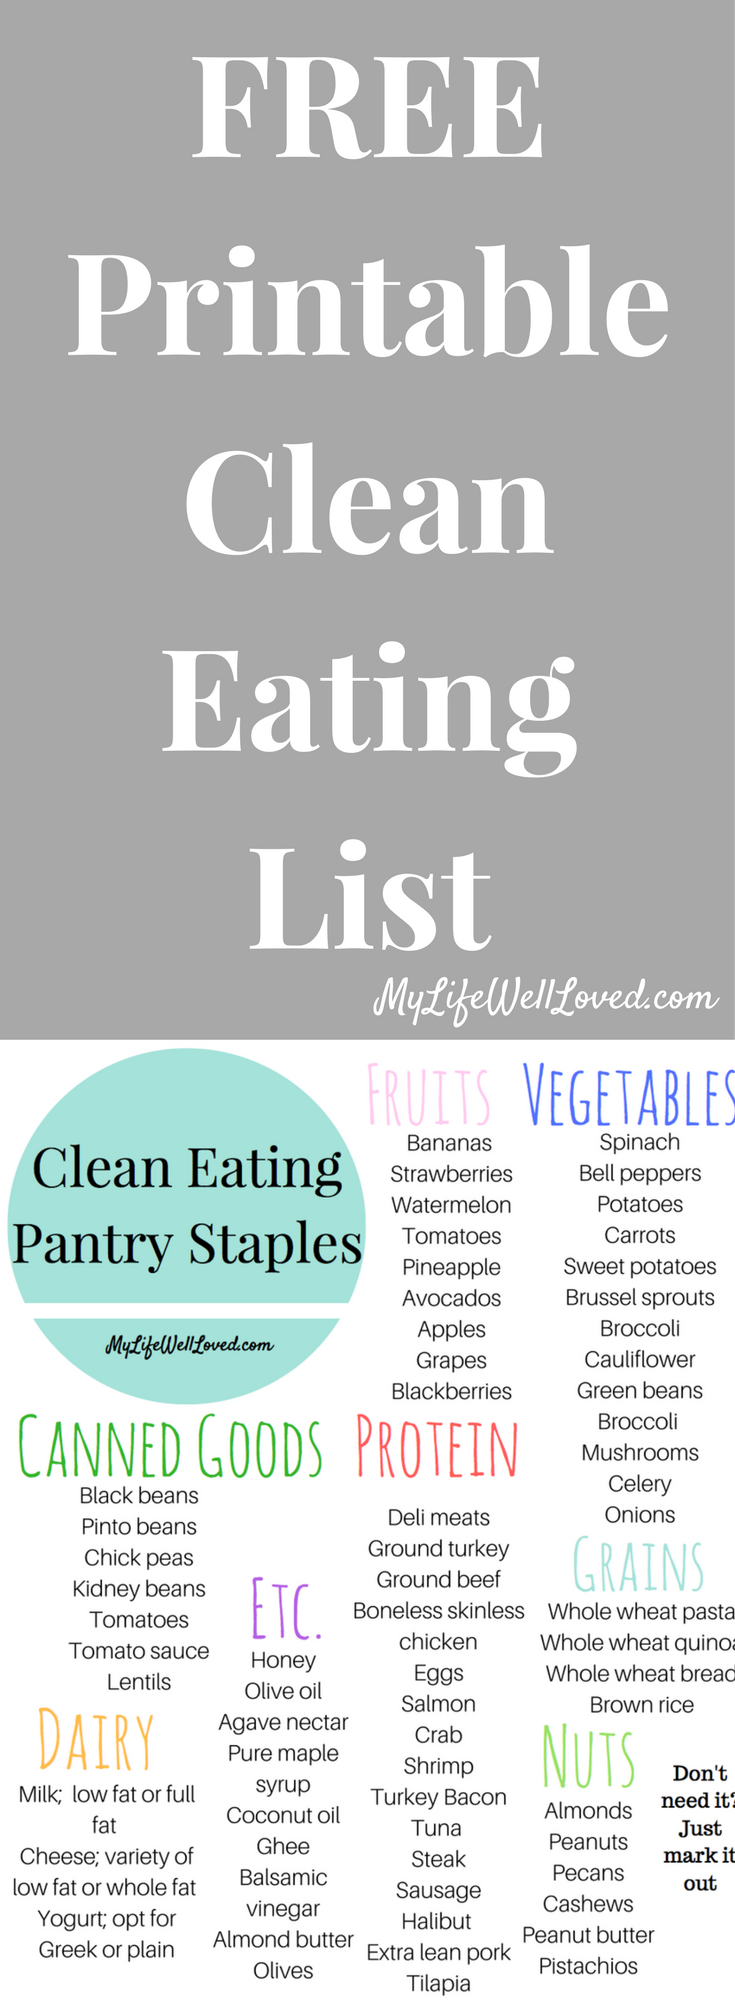 photo regarding Clean Eating Food List Printable named Fresh new Having Evening meal Designing + Free of charge Printable Grocery Checklist